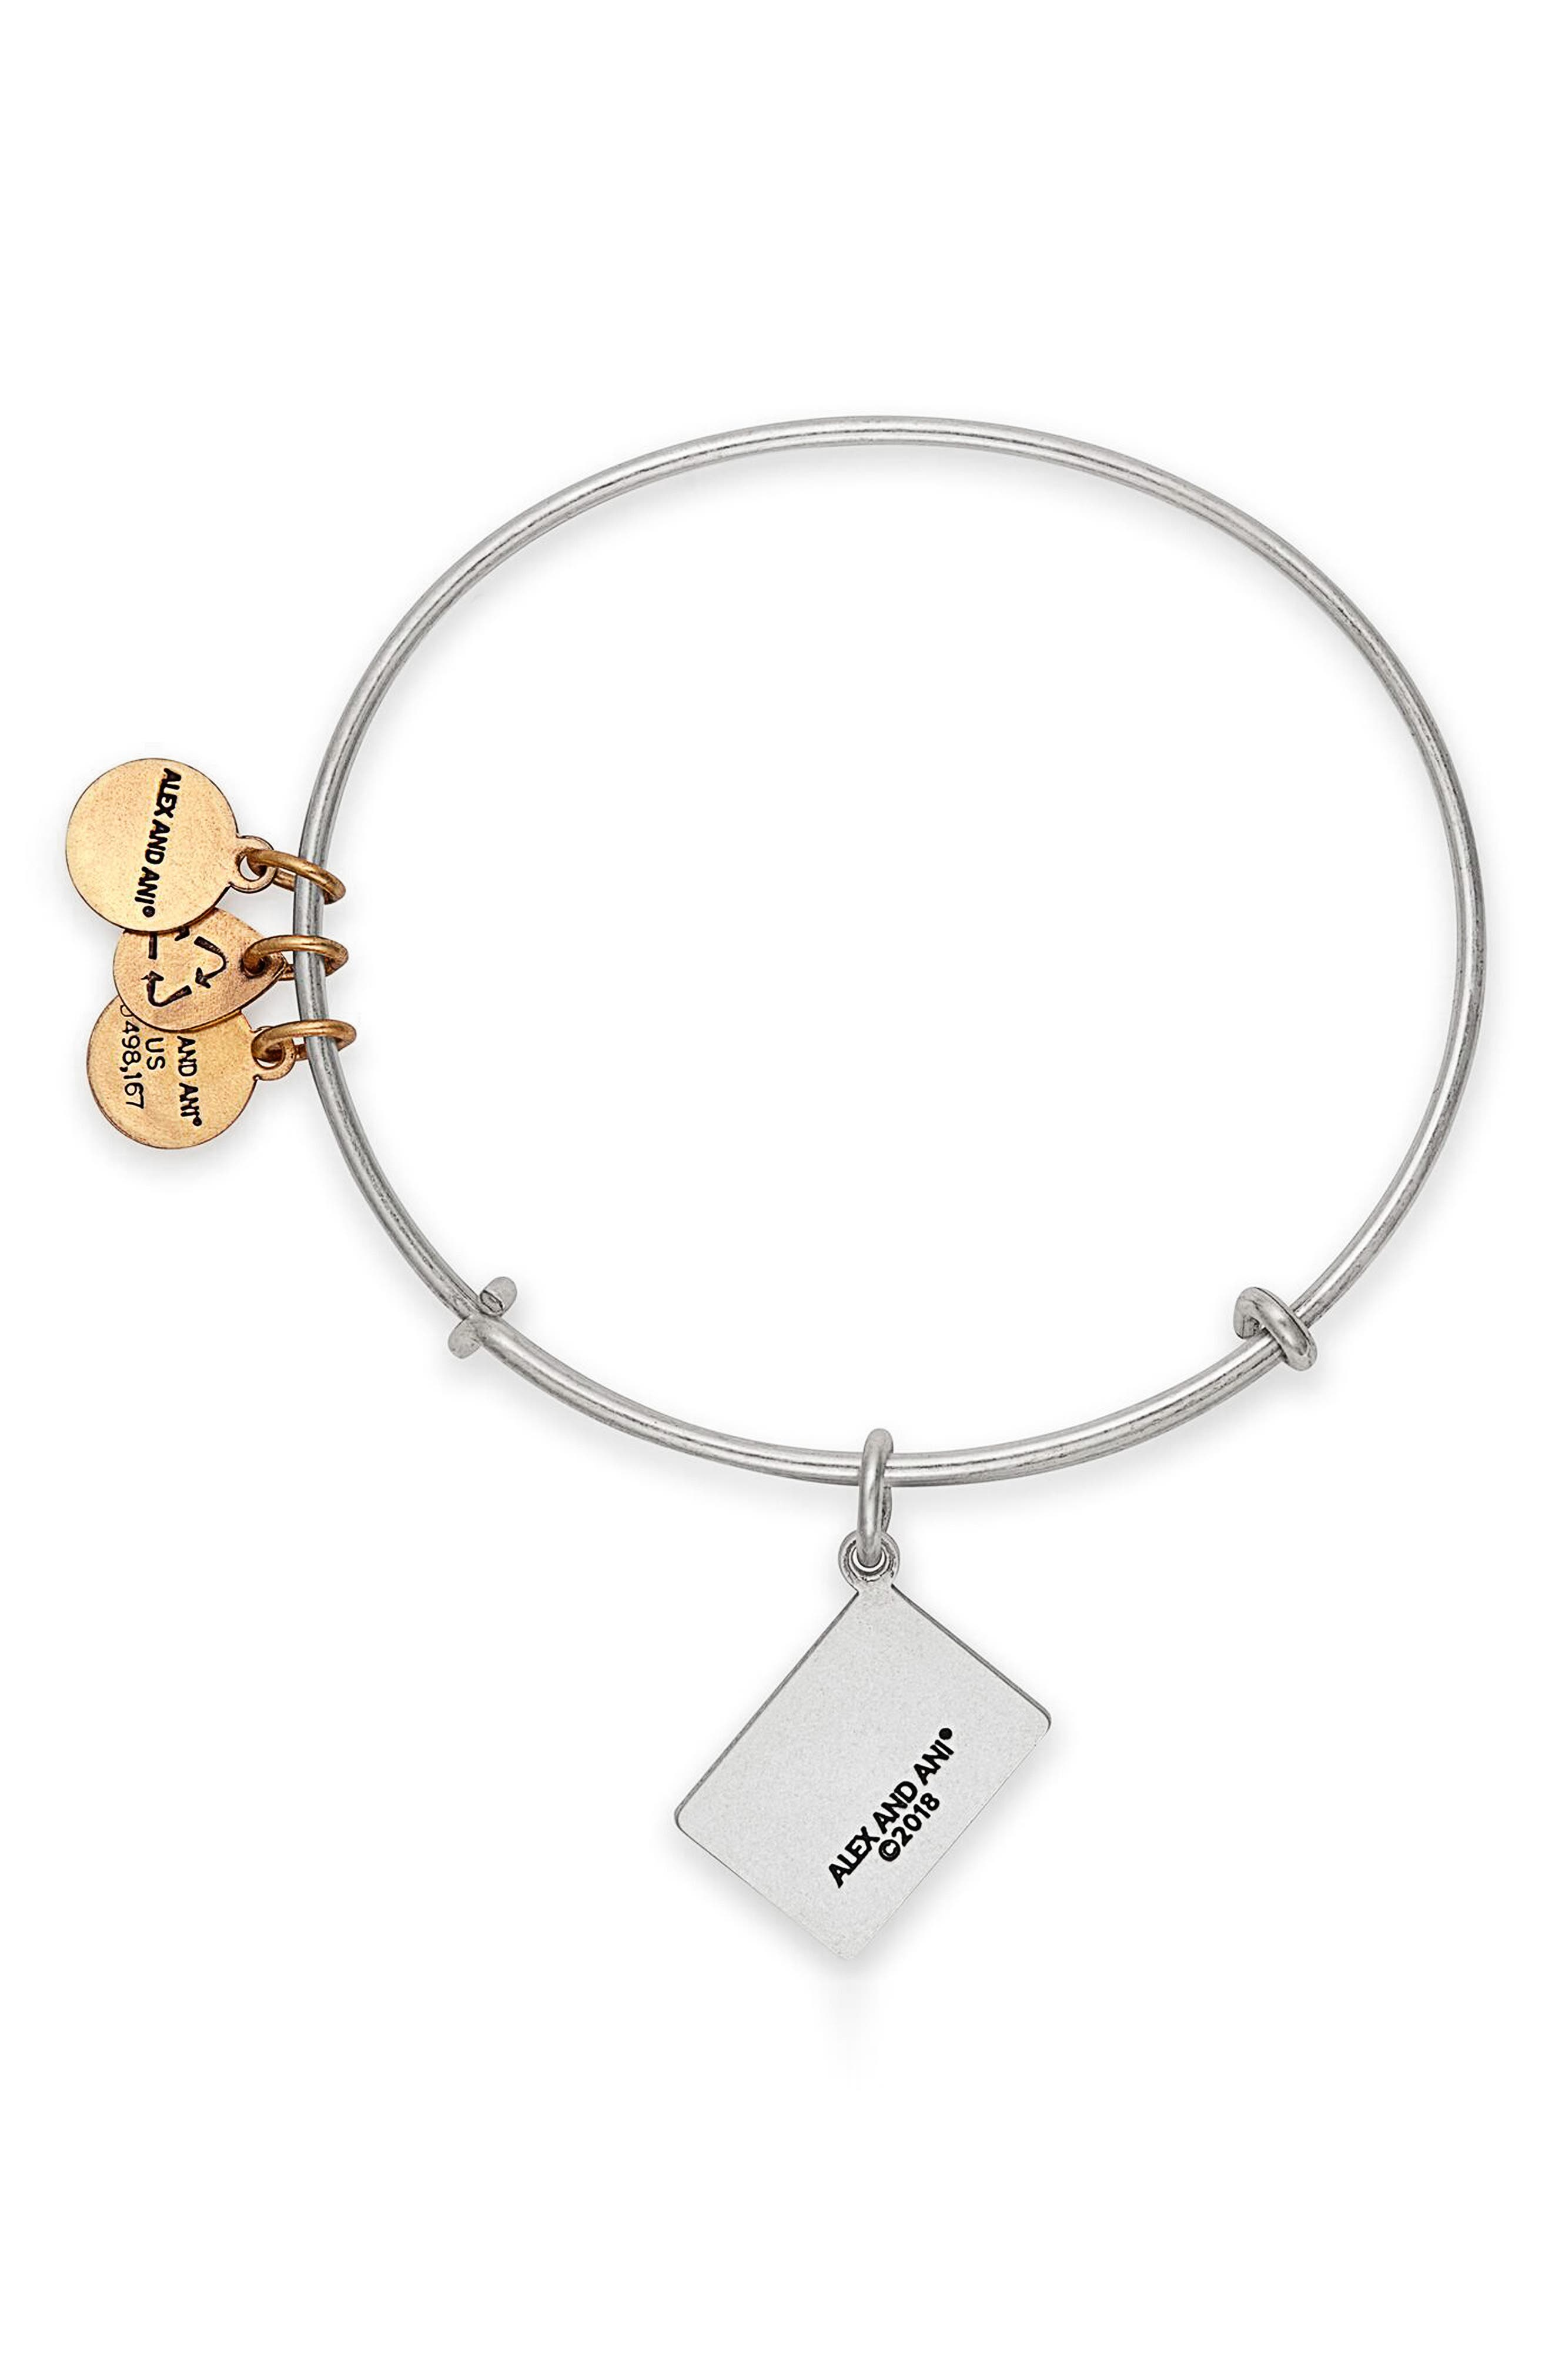 Class of 2018 Charm Bangle,                             Alternate thumbnail 2, color,                             Silver